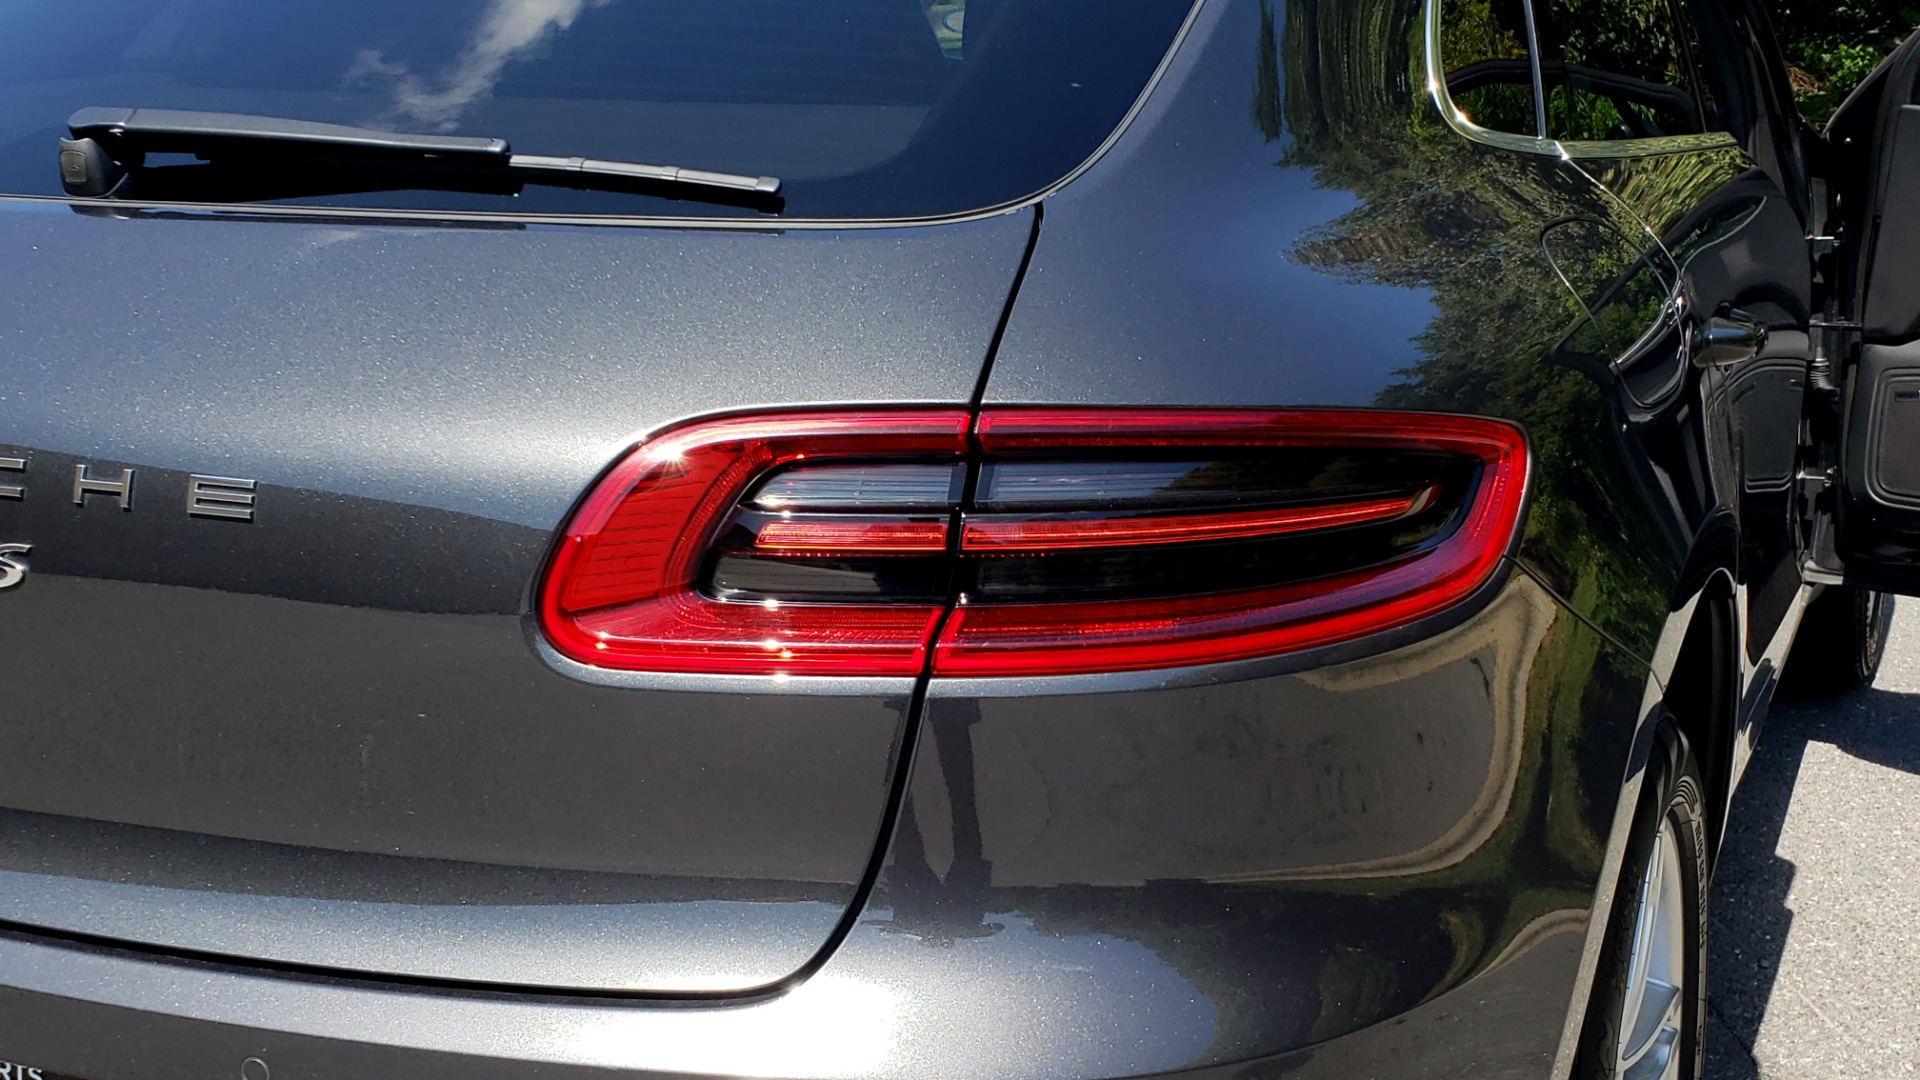 Used 2017 Porsche MACAN S PREMIUM PKG / NAV / BOSE / SUNROOF / REARVIEW for sale Sold at Formula Imports in Charlotte NC 28227 42